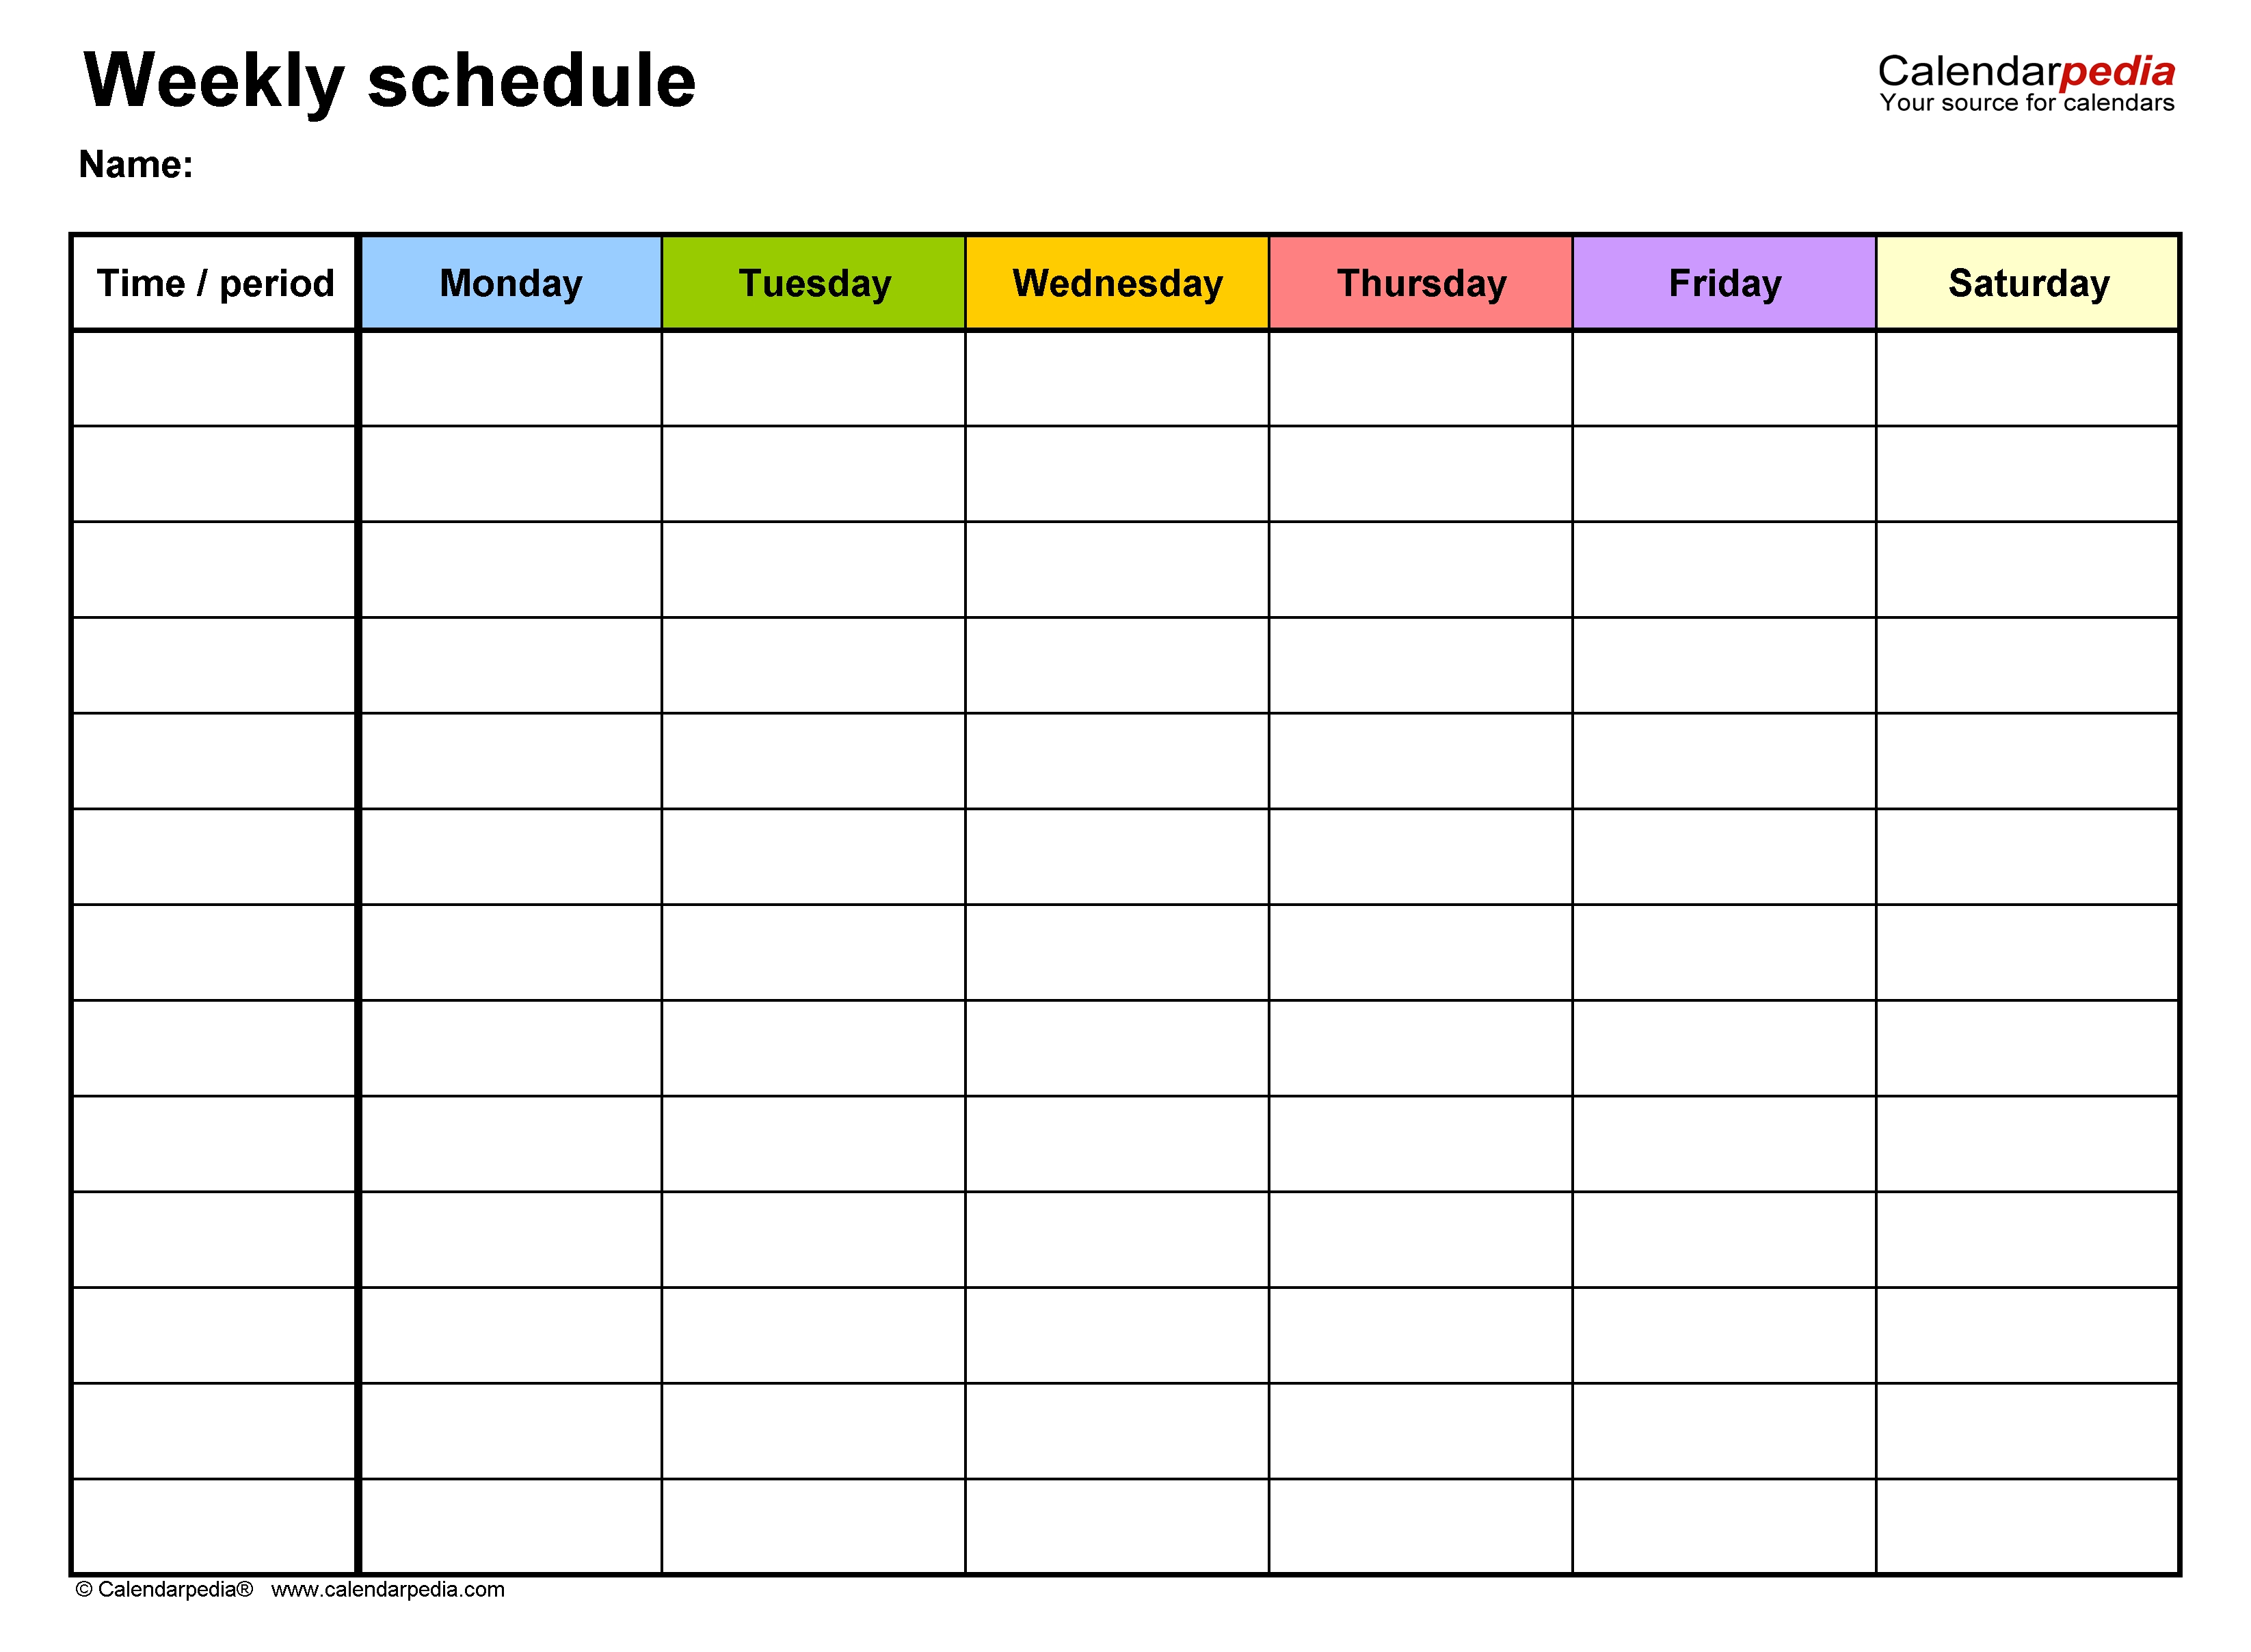 Free Weekly Schedules For Excel - 18 Templates A Calendar Template For Excel